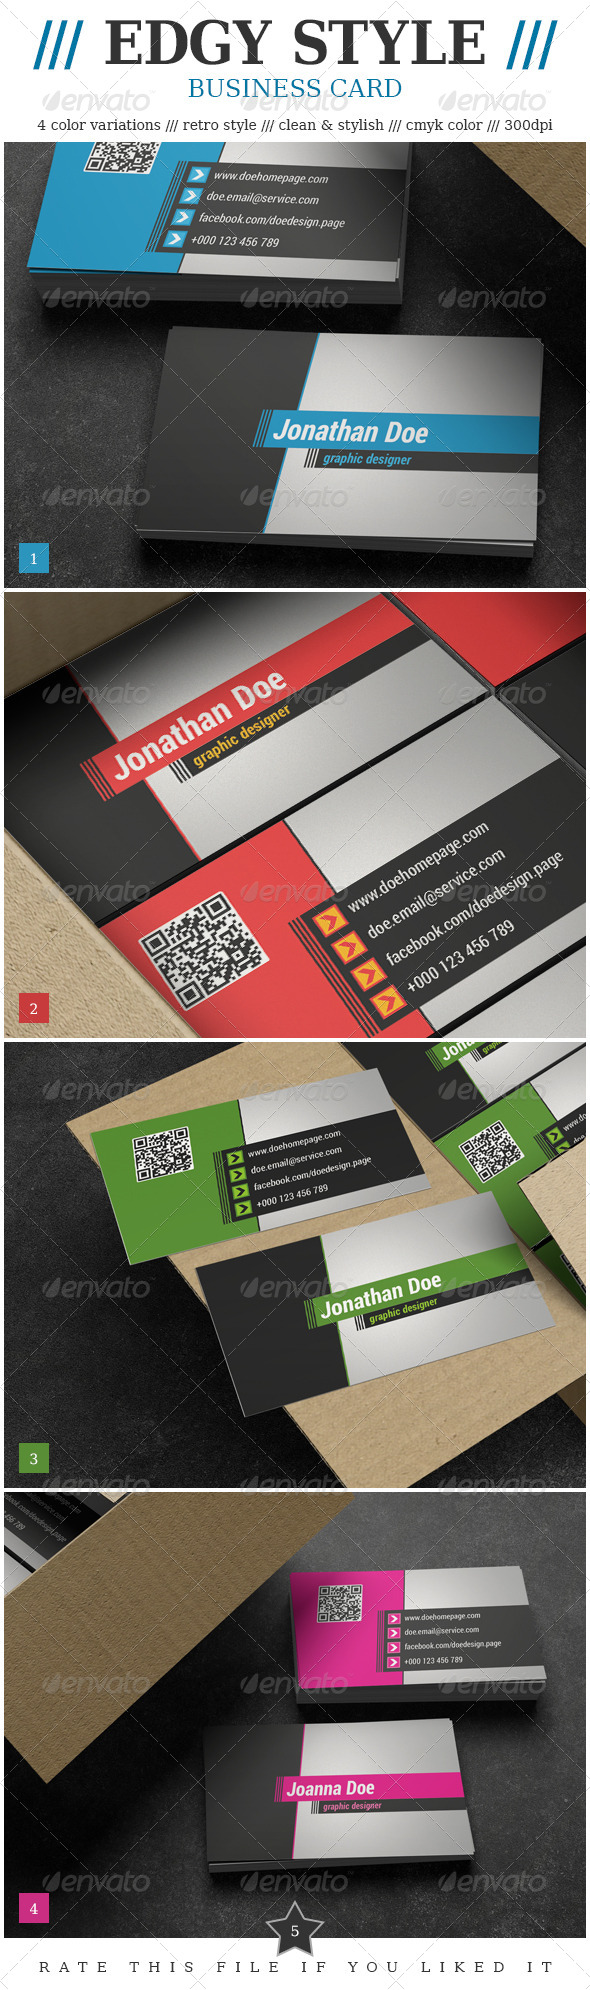 Edgy Style Business Card - Corporate Business Cards